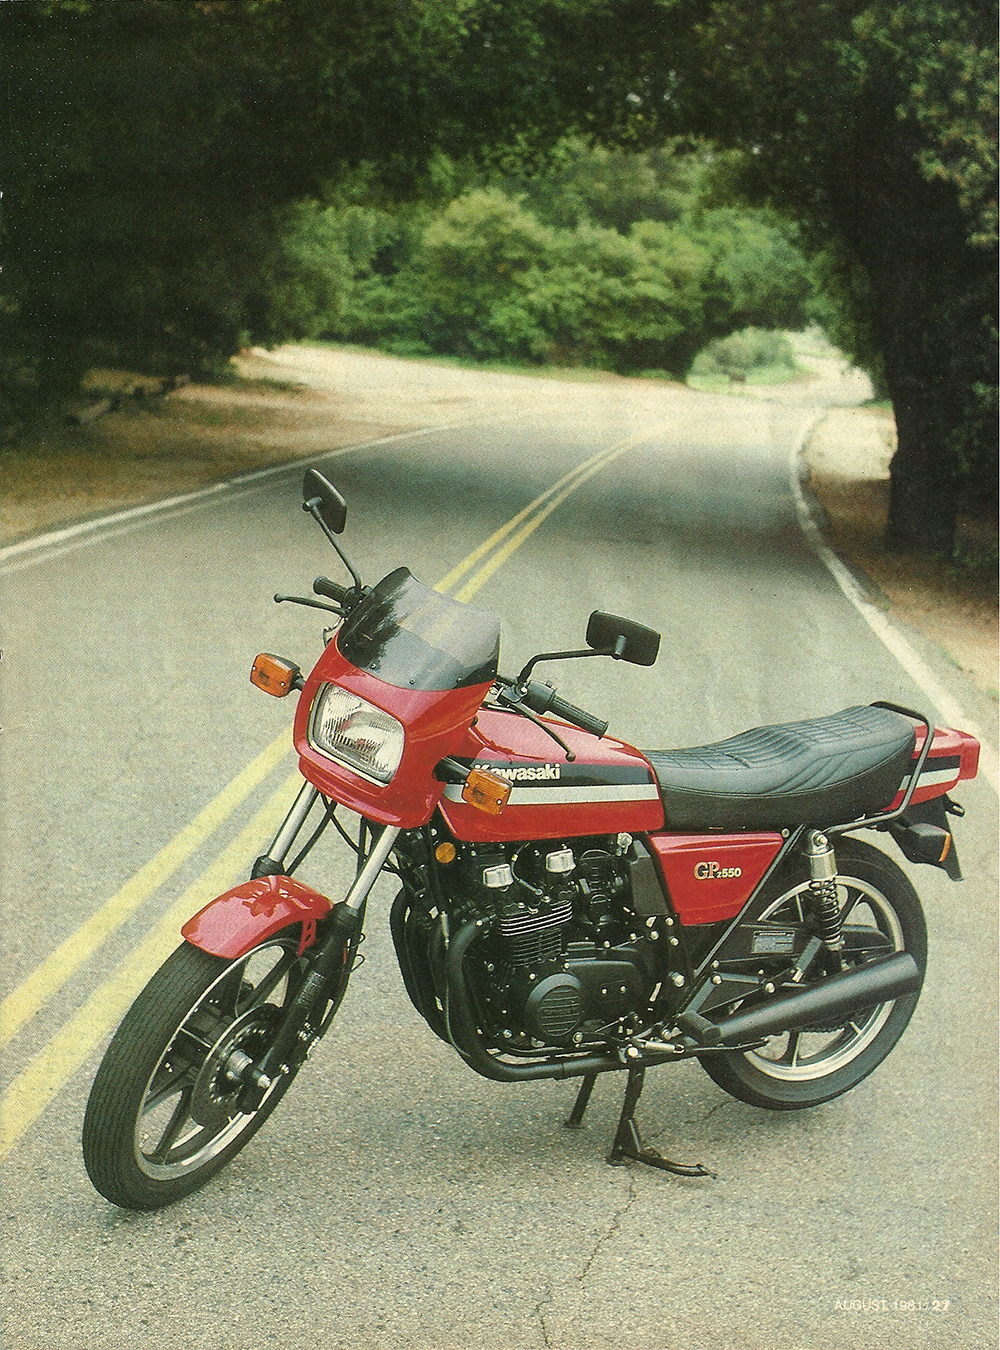 1981 Kawasaki GPz 550 road test 4.jpg